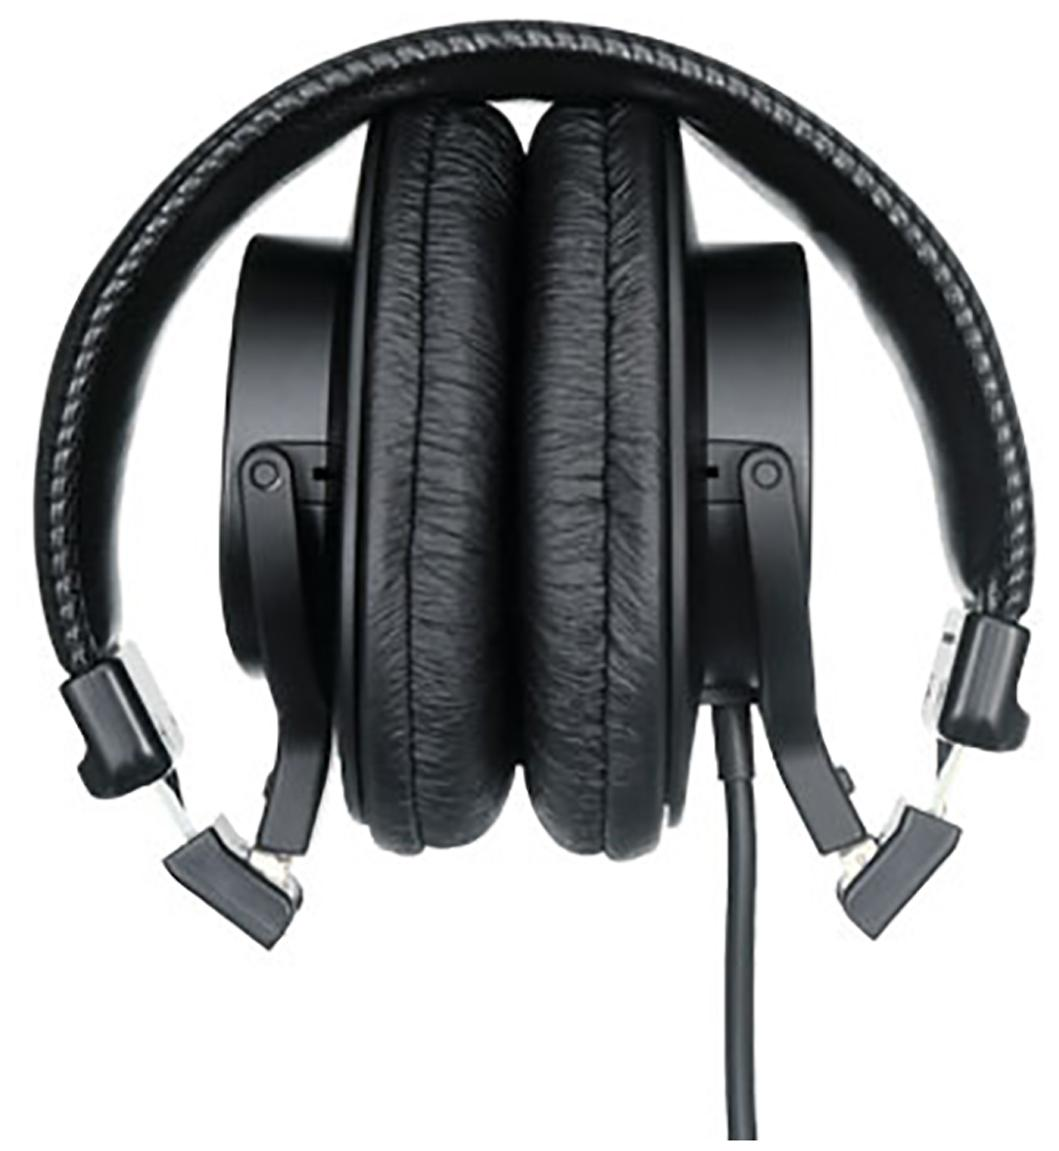 sony mdr 7506 on ear professional headphones black grabfly best online comparison shopping. Black Bedroom Furniture Sets. Home Design Ideas